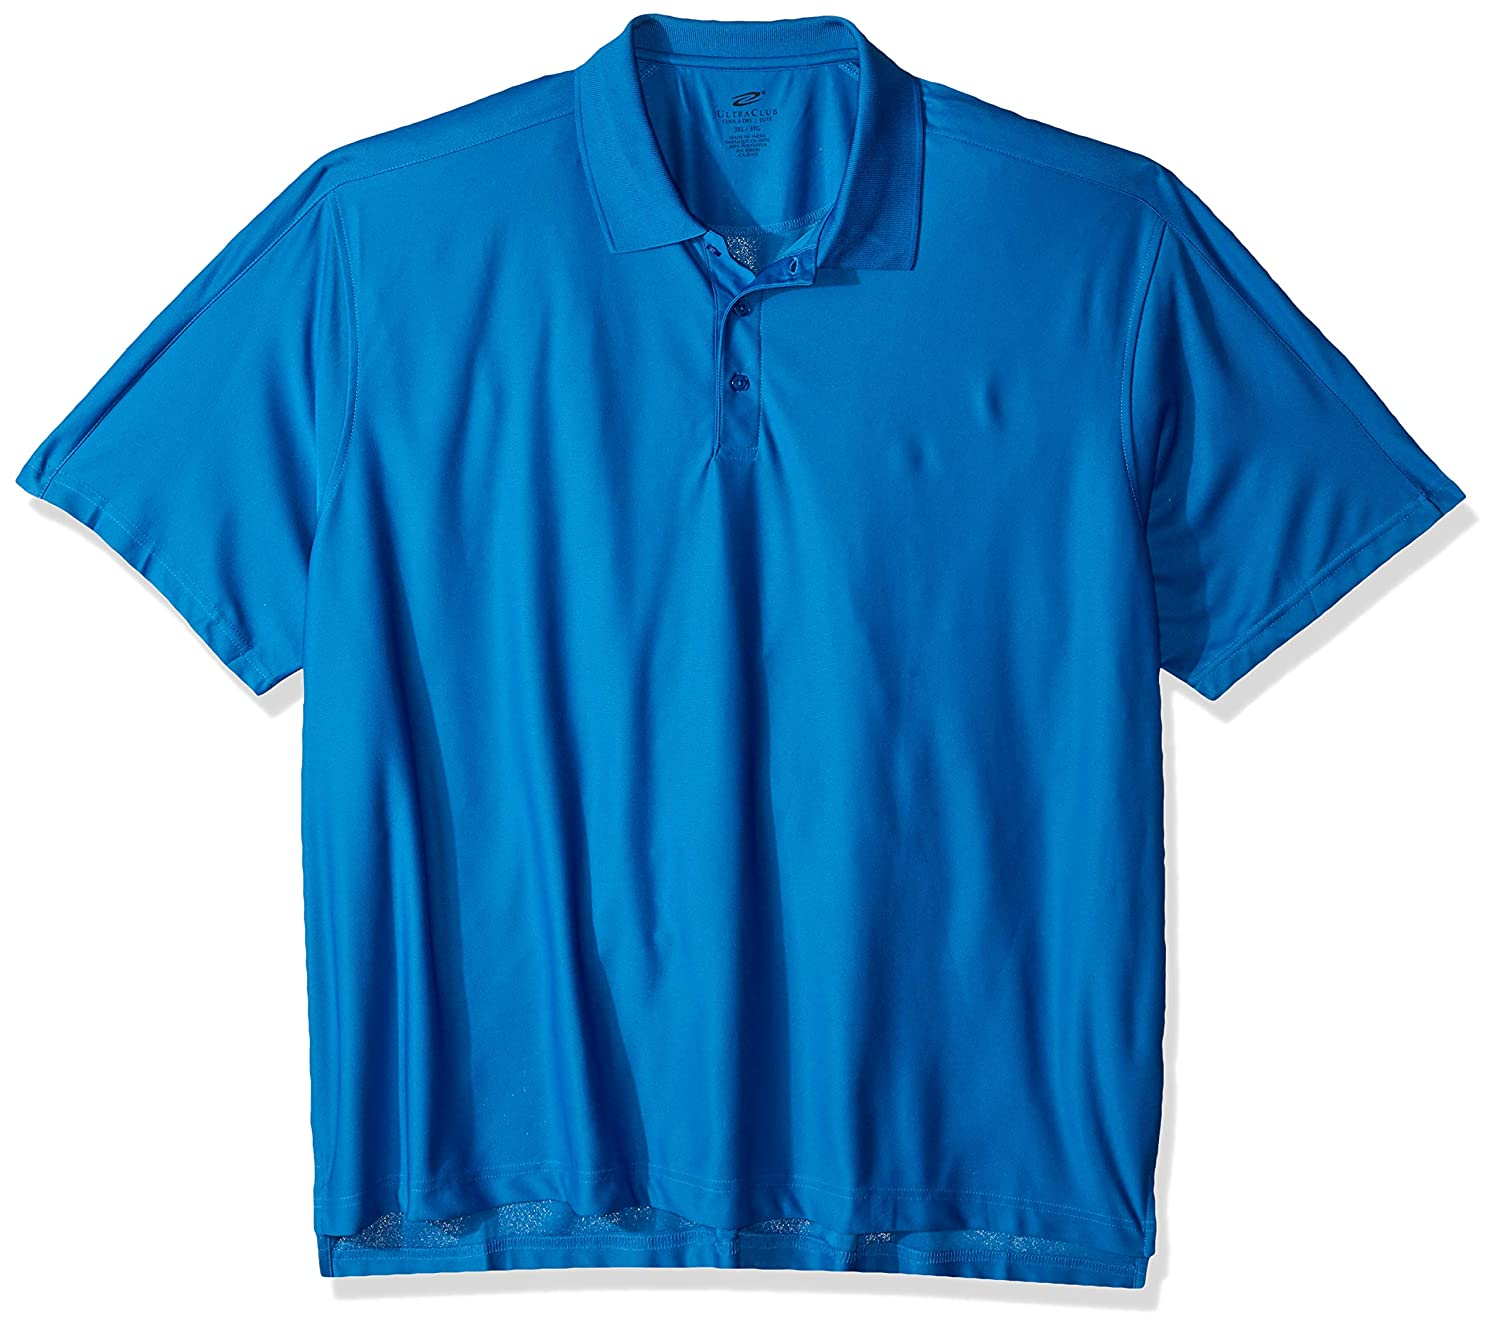 UltraClubs Mens Ultc-8415-cool /& Dry Elite Performance Polo